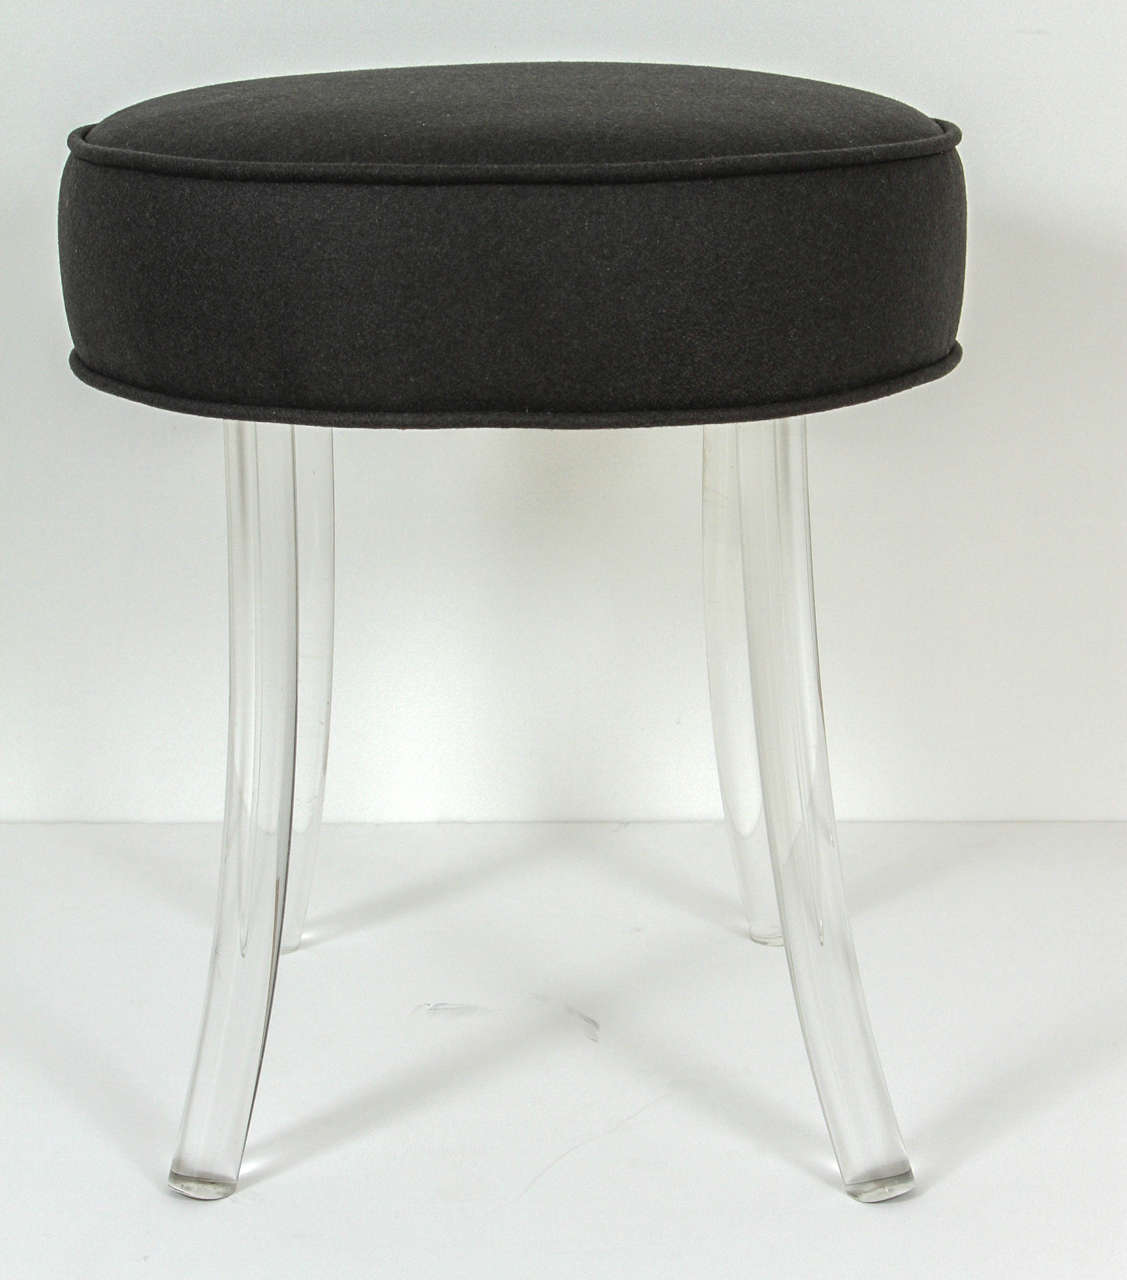 upholstered william haines vanity stool with lucite legs at stdibs - upholstered william haines vanity stool with lucite legs